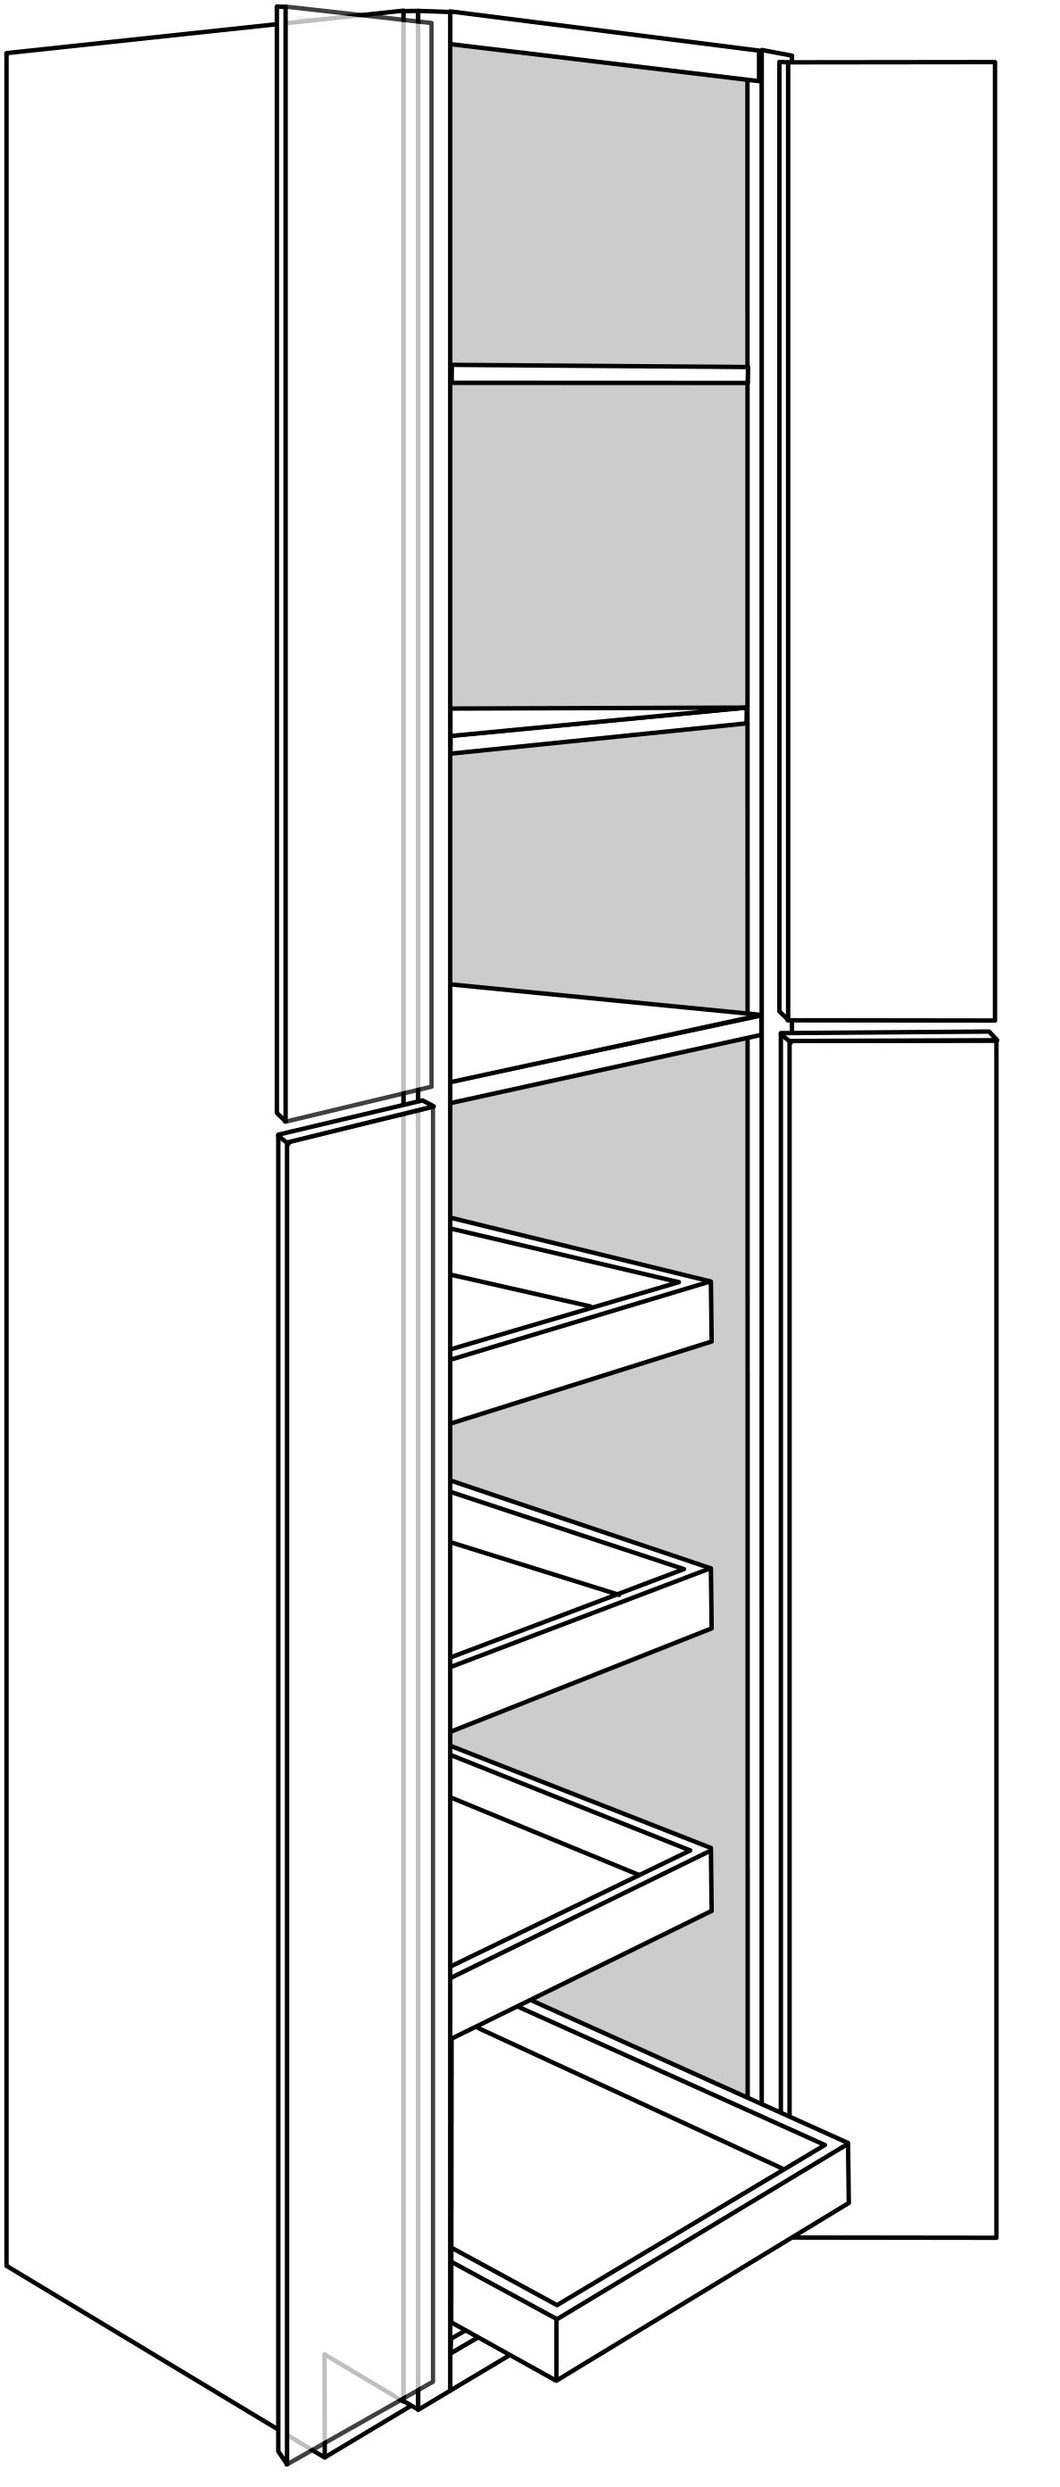 QUINCY TALL CABINETS WITH ROLLOUTS: 24